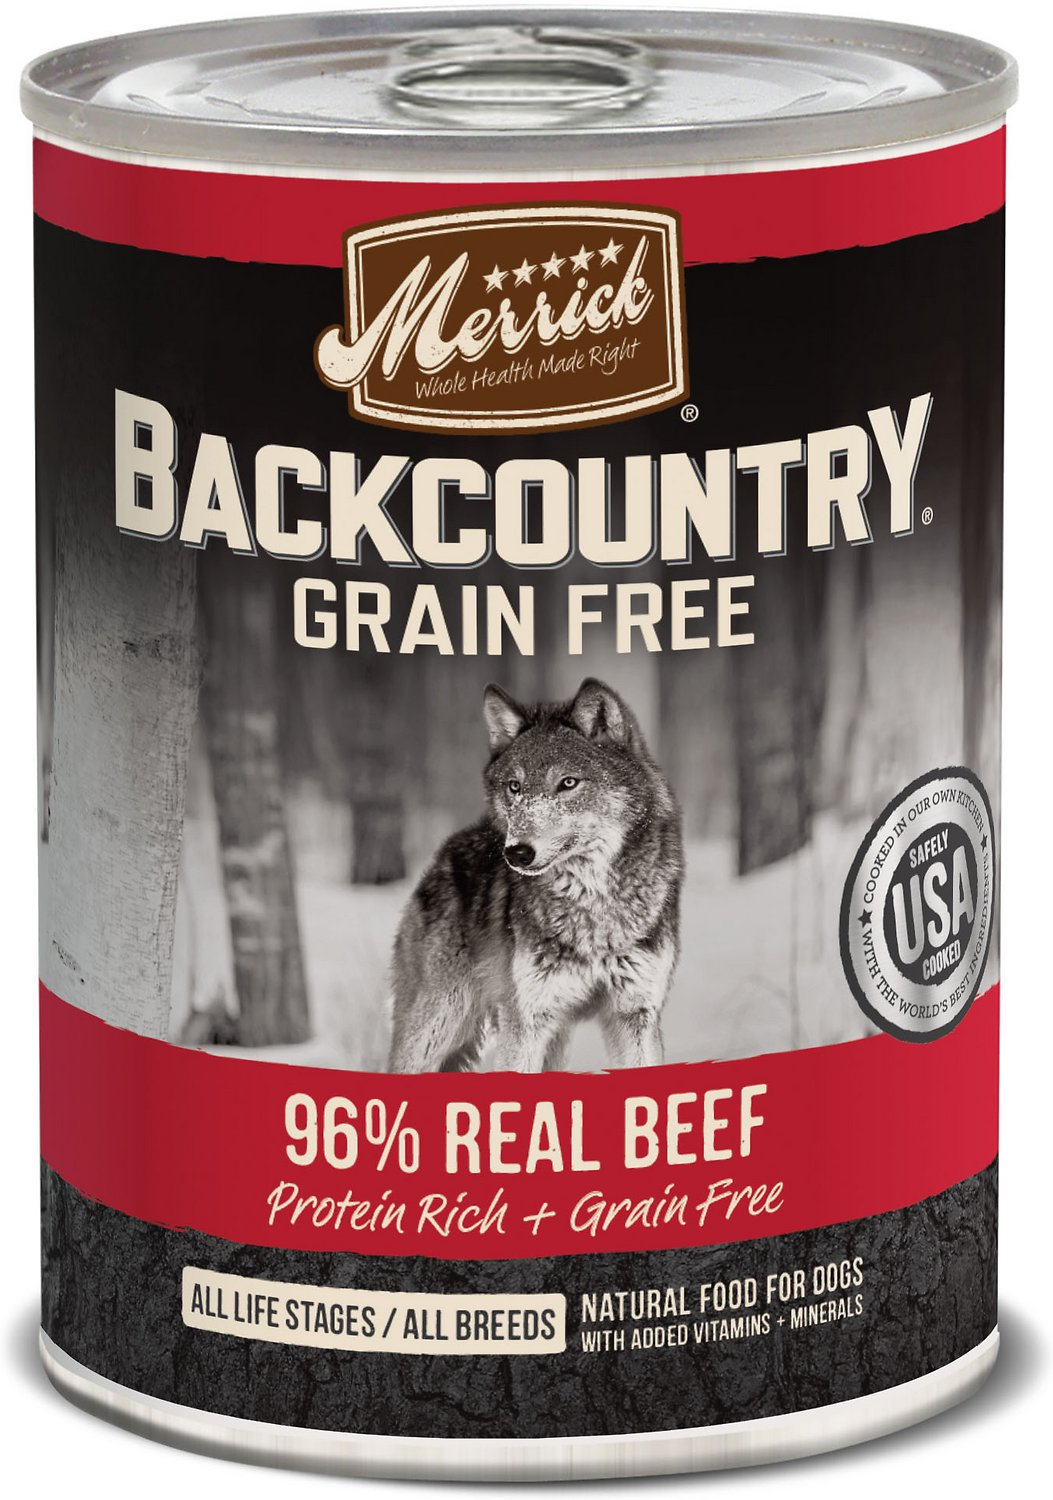 Merrick Backcountry Grain-Free 96% Real Beef Recipe Canned Dog Food, 12.7-oz